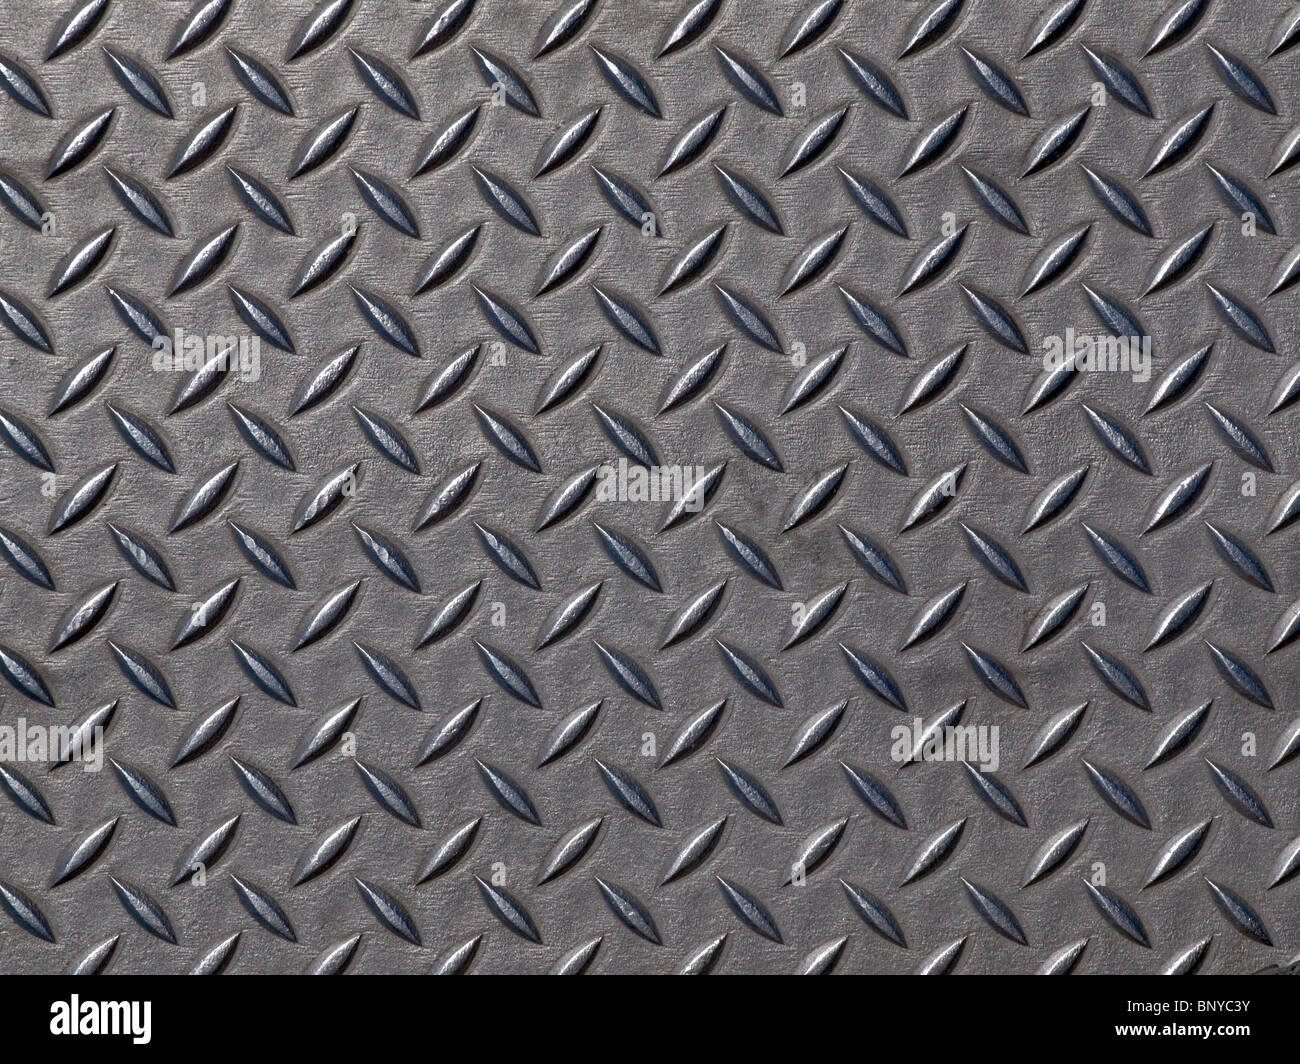 Worn steel road plate. Grunge background texture. - Stock Image